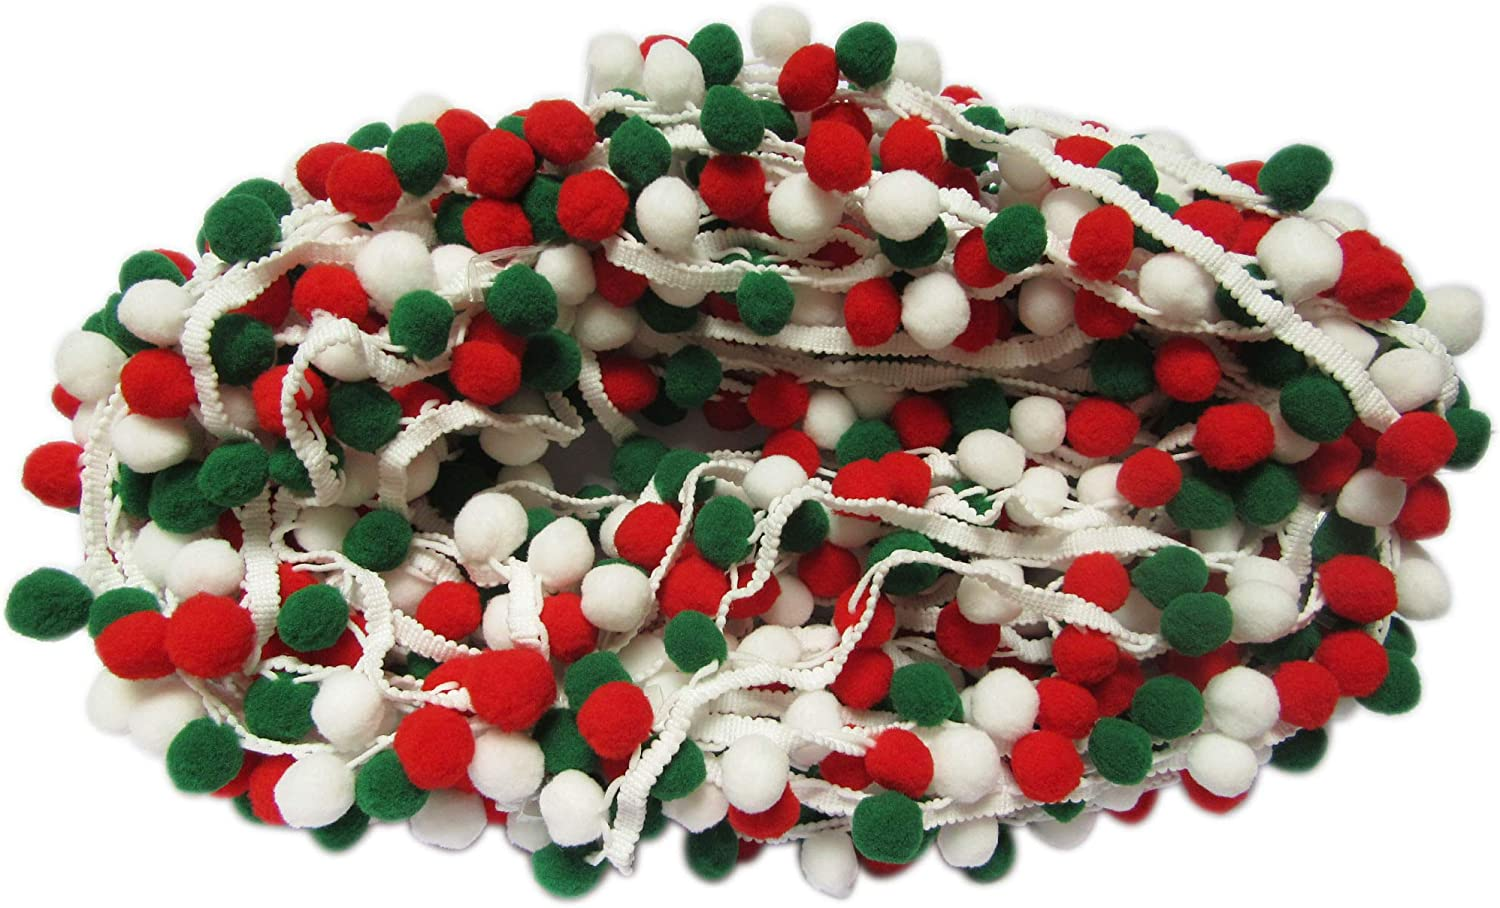 Pom Size:1 Red//Green YYCRAFT 5 Yards Large Christmas Pom Pom Ball Fringe Trim Ribbon Sewing Lace for Clothing Curtain Pillow Accessory Decoration DIY Craft